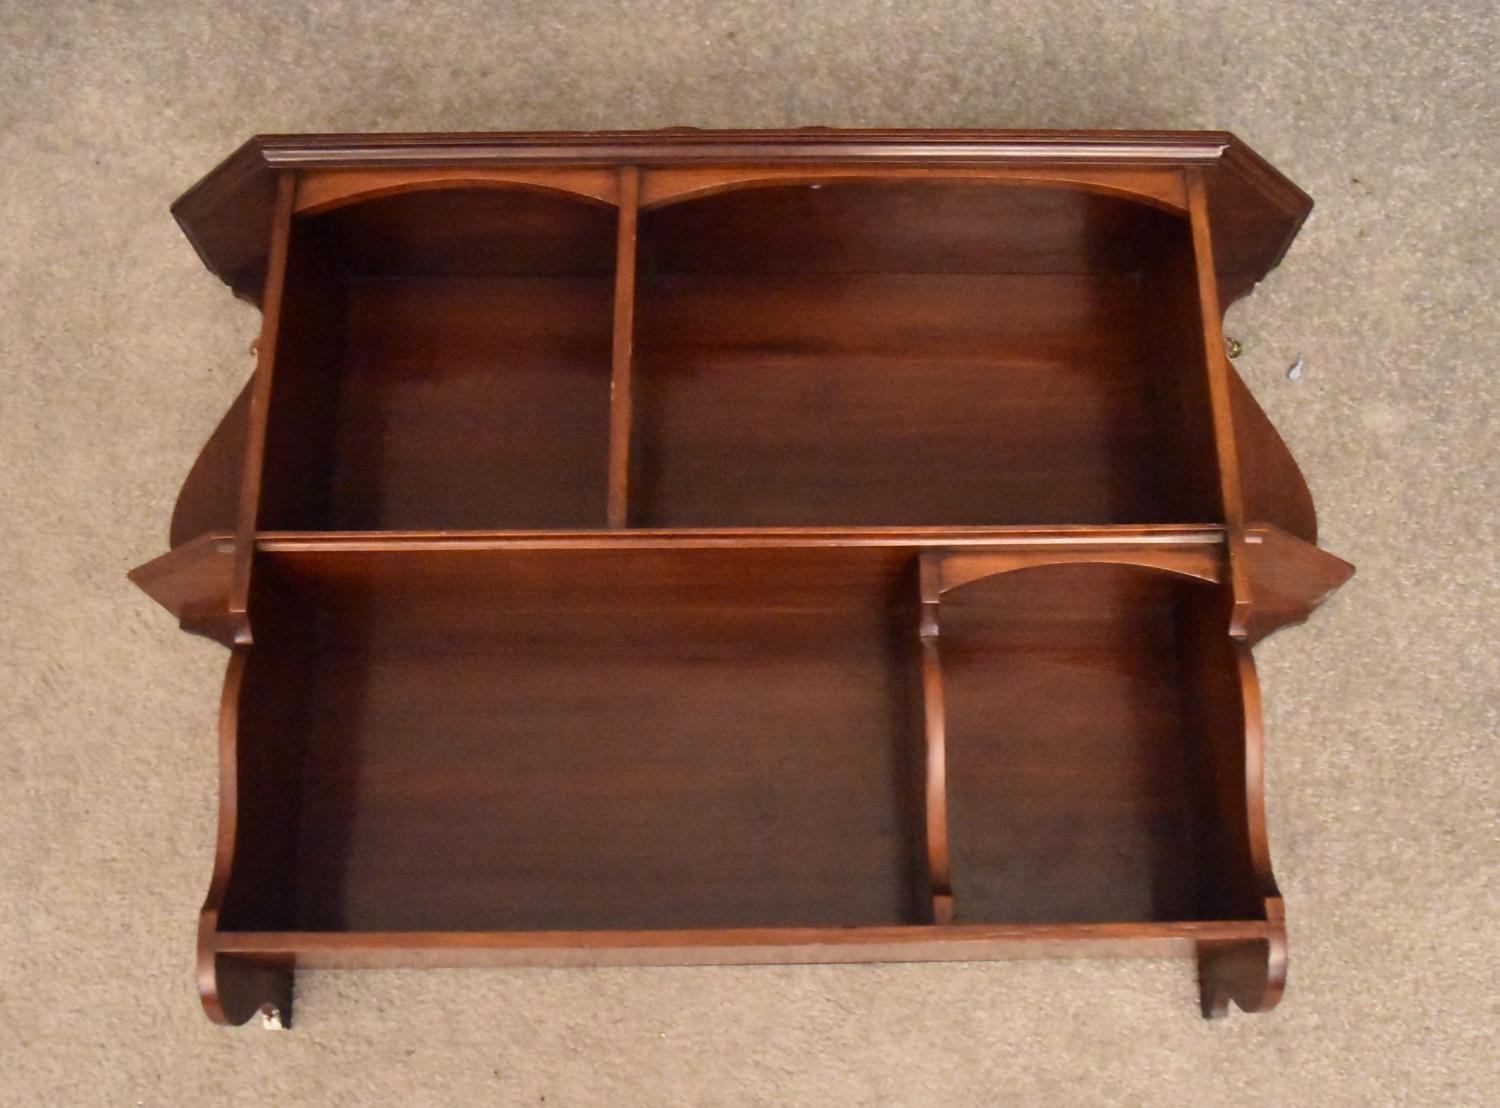 A set of Victorian mahogany open wall shelves H.73x73x15cm - Image 2 of 3